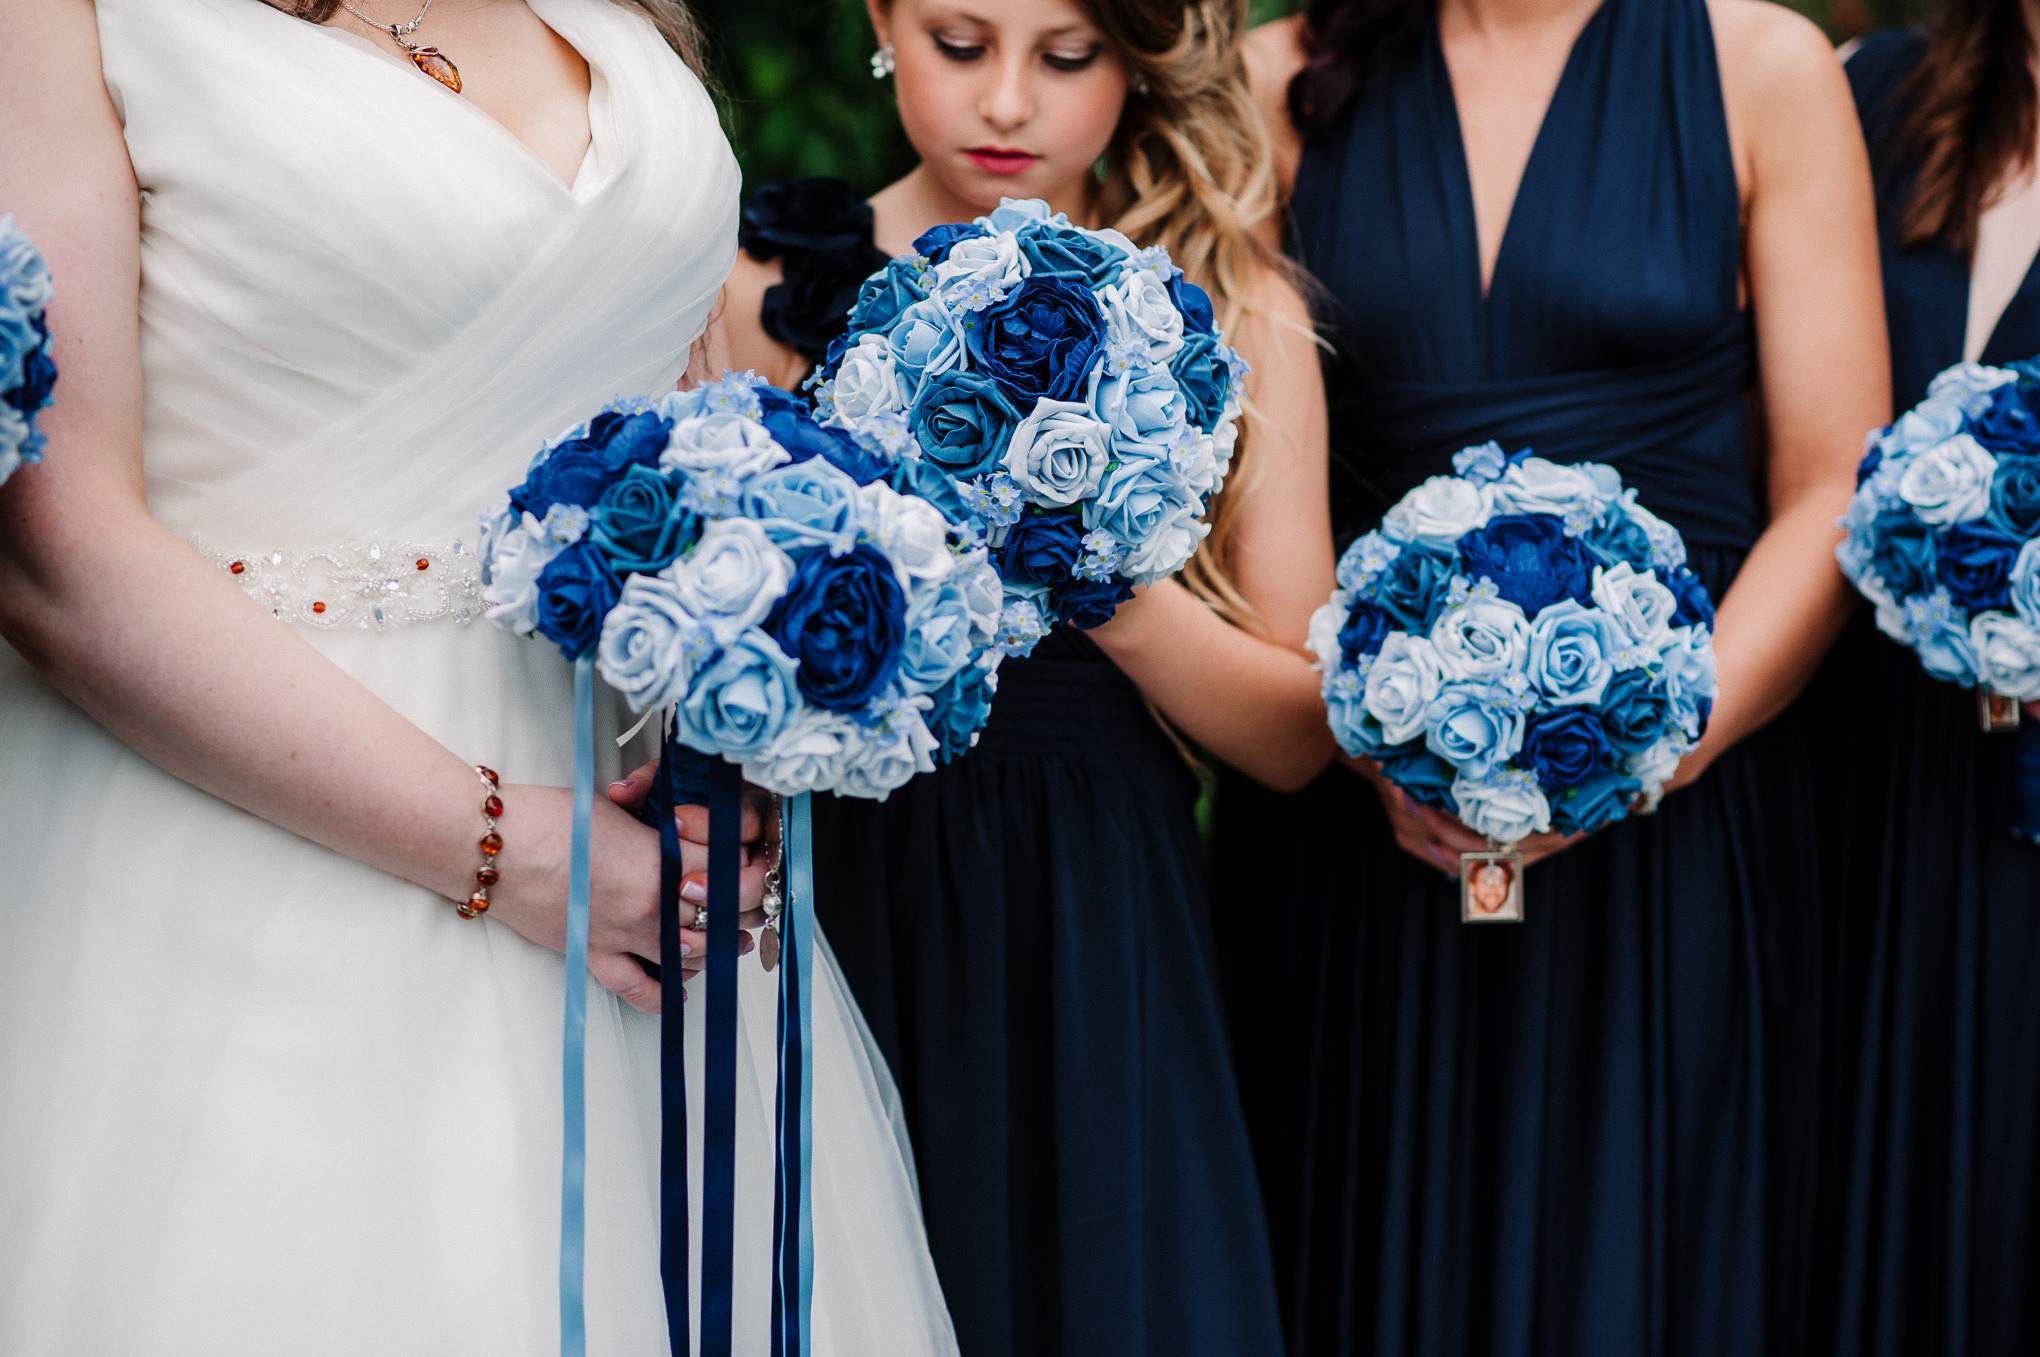 Detailed shot of the bridesmaids bouquets.